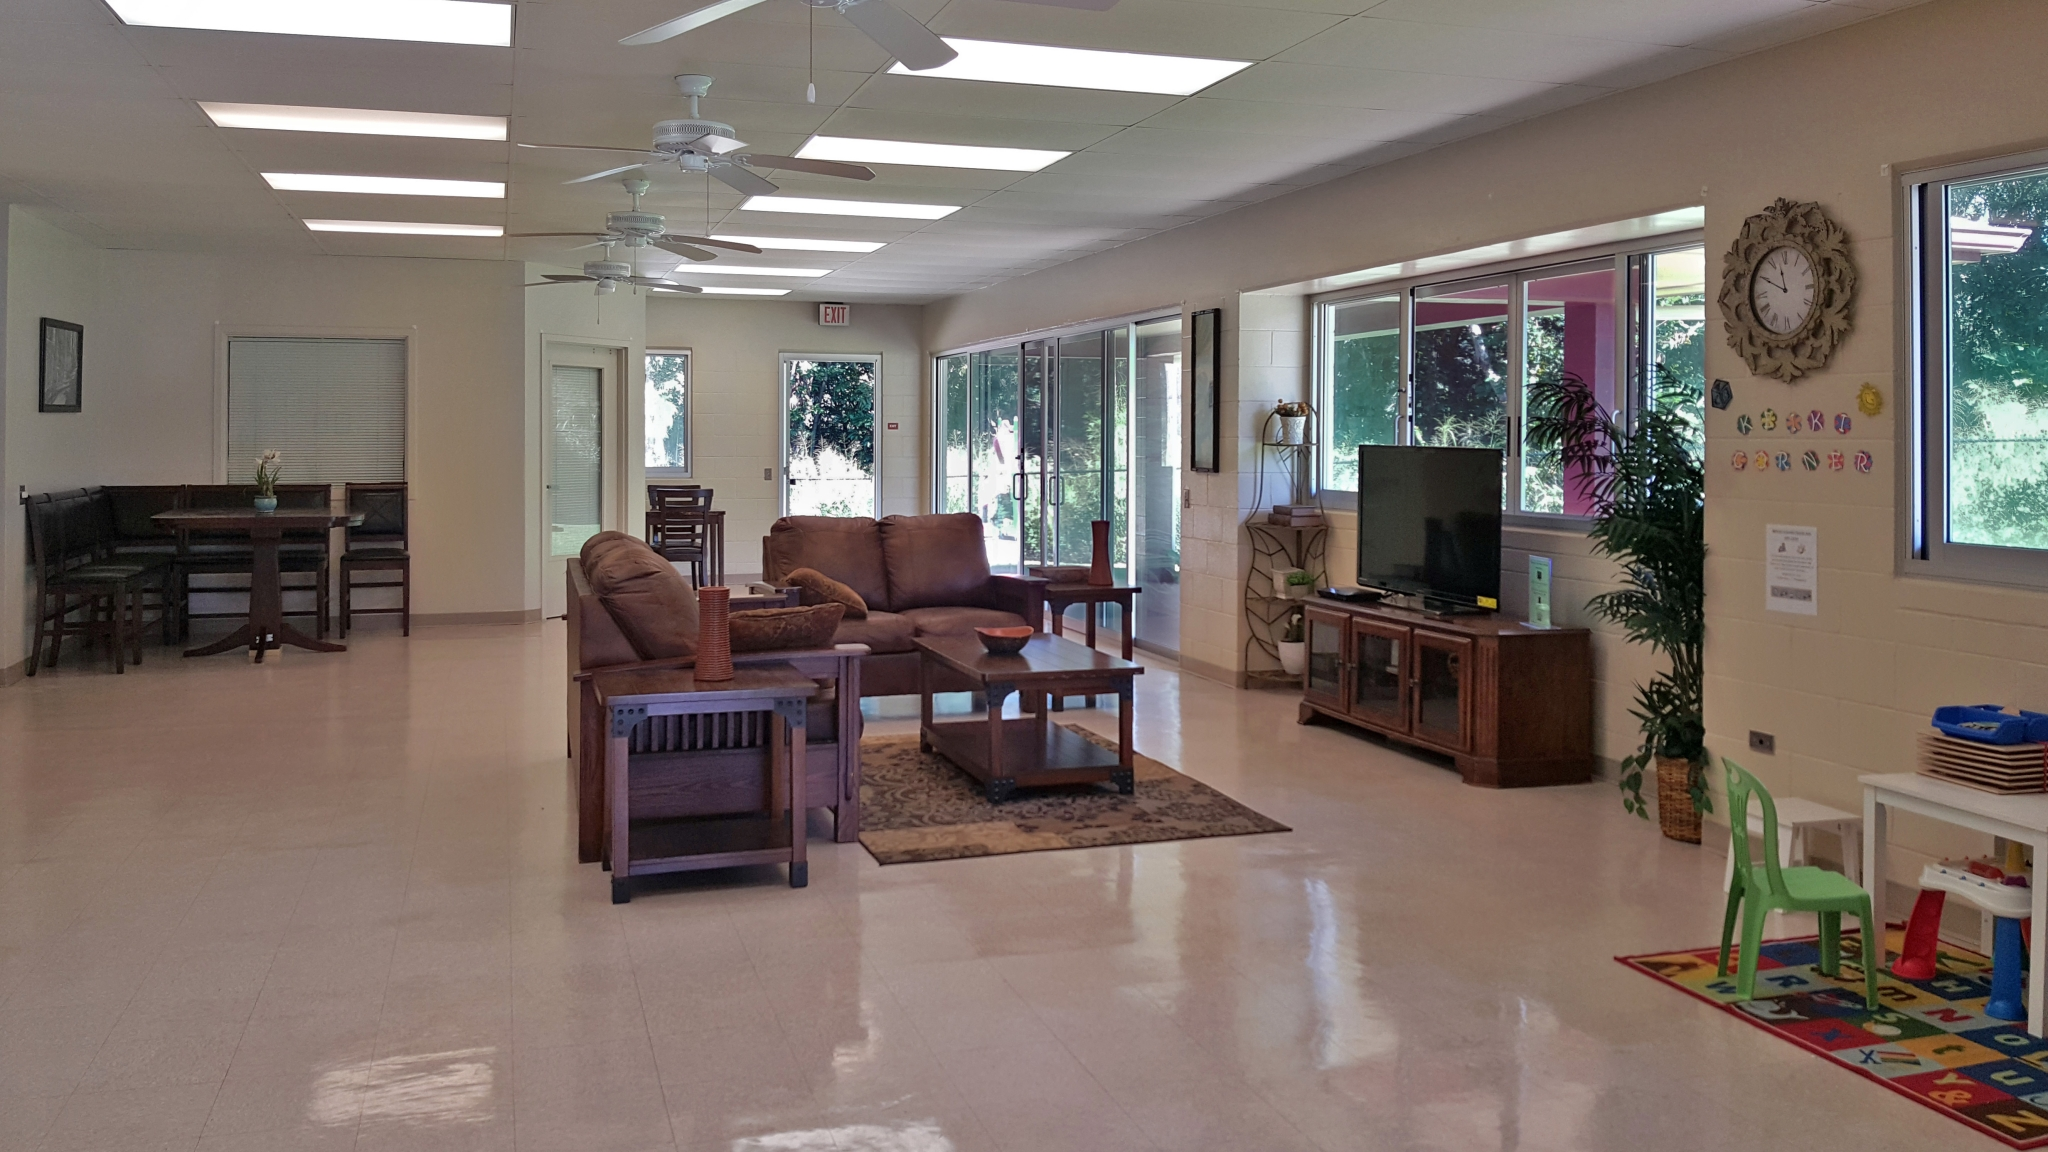 Image of Community Room for Kawahi Maluwai Apartments